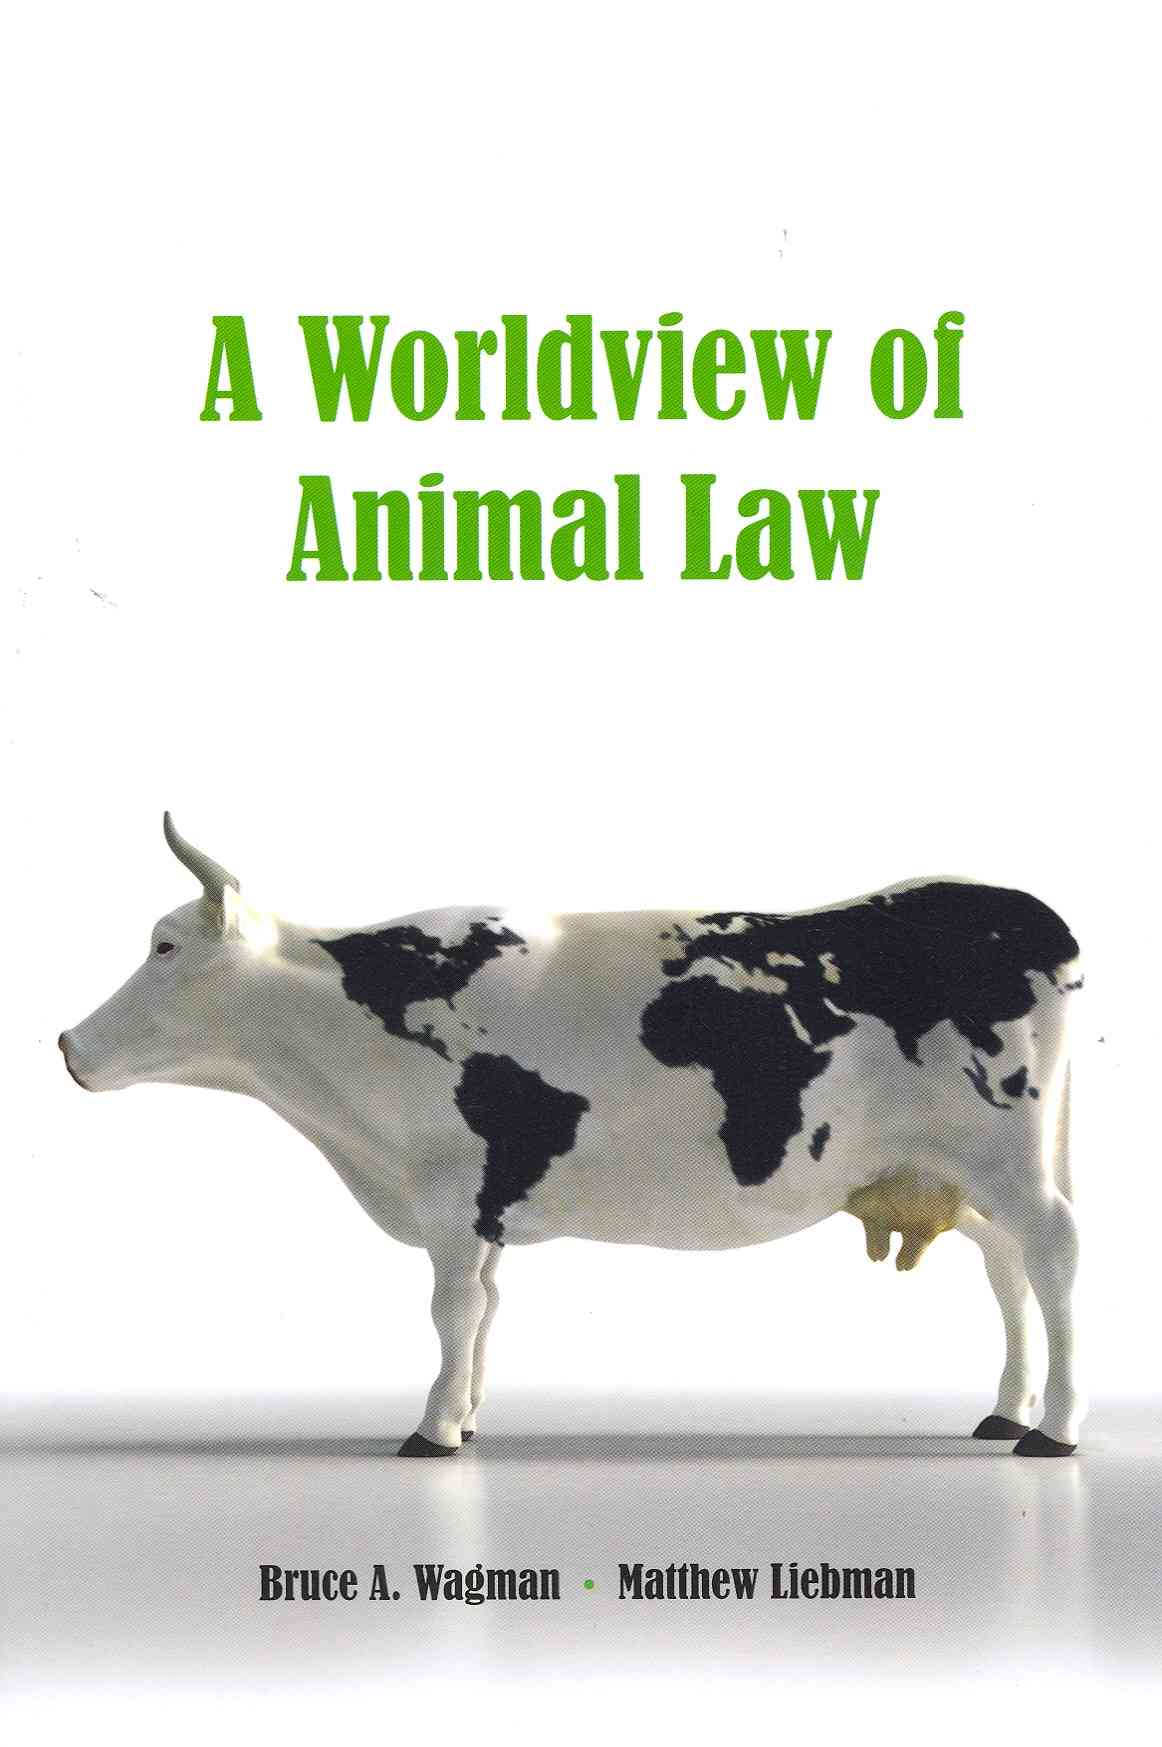 A Worldview of Animal Law (Paperback)